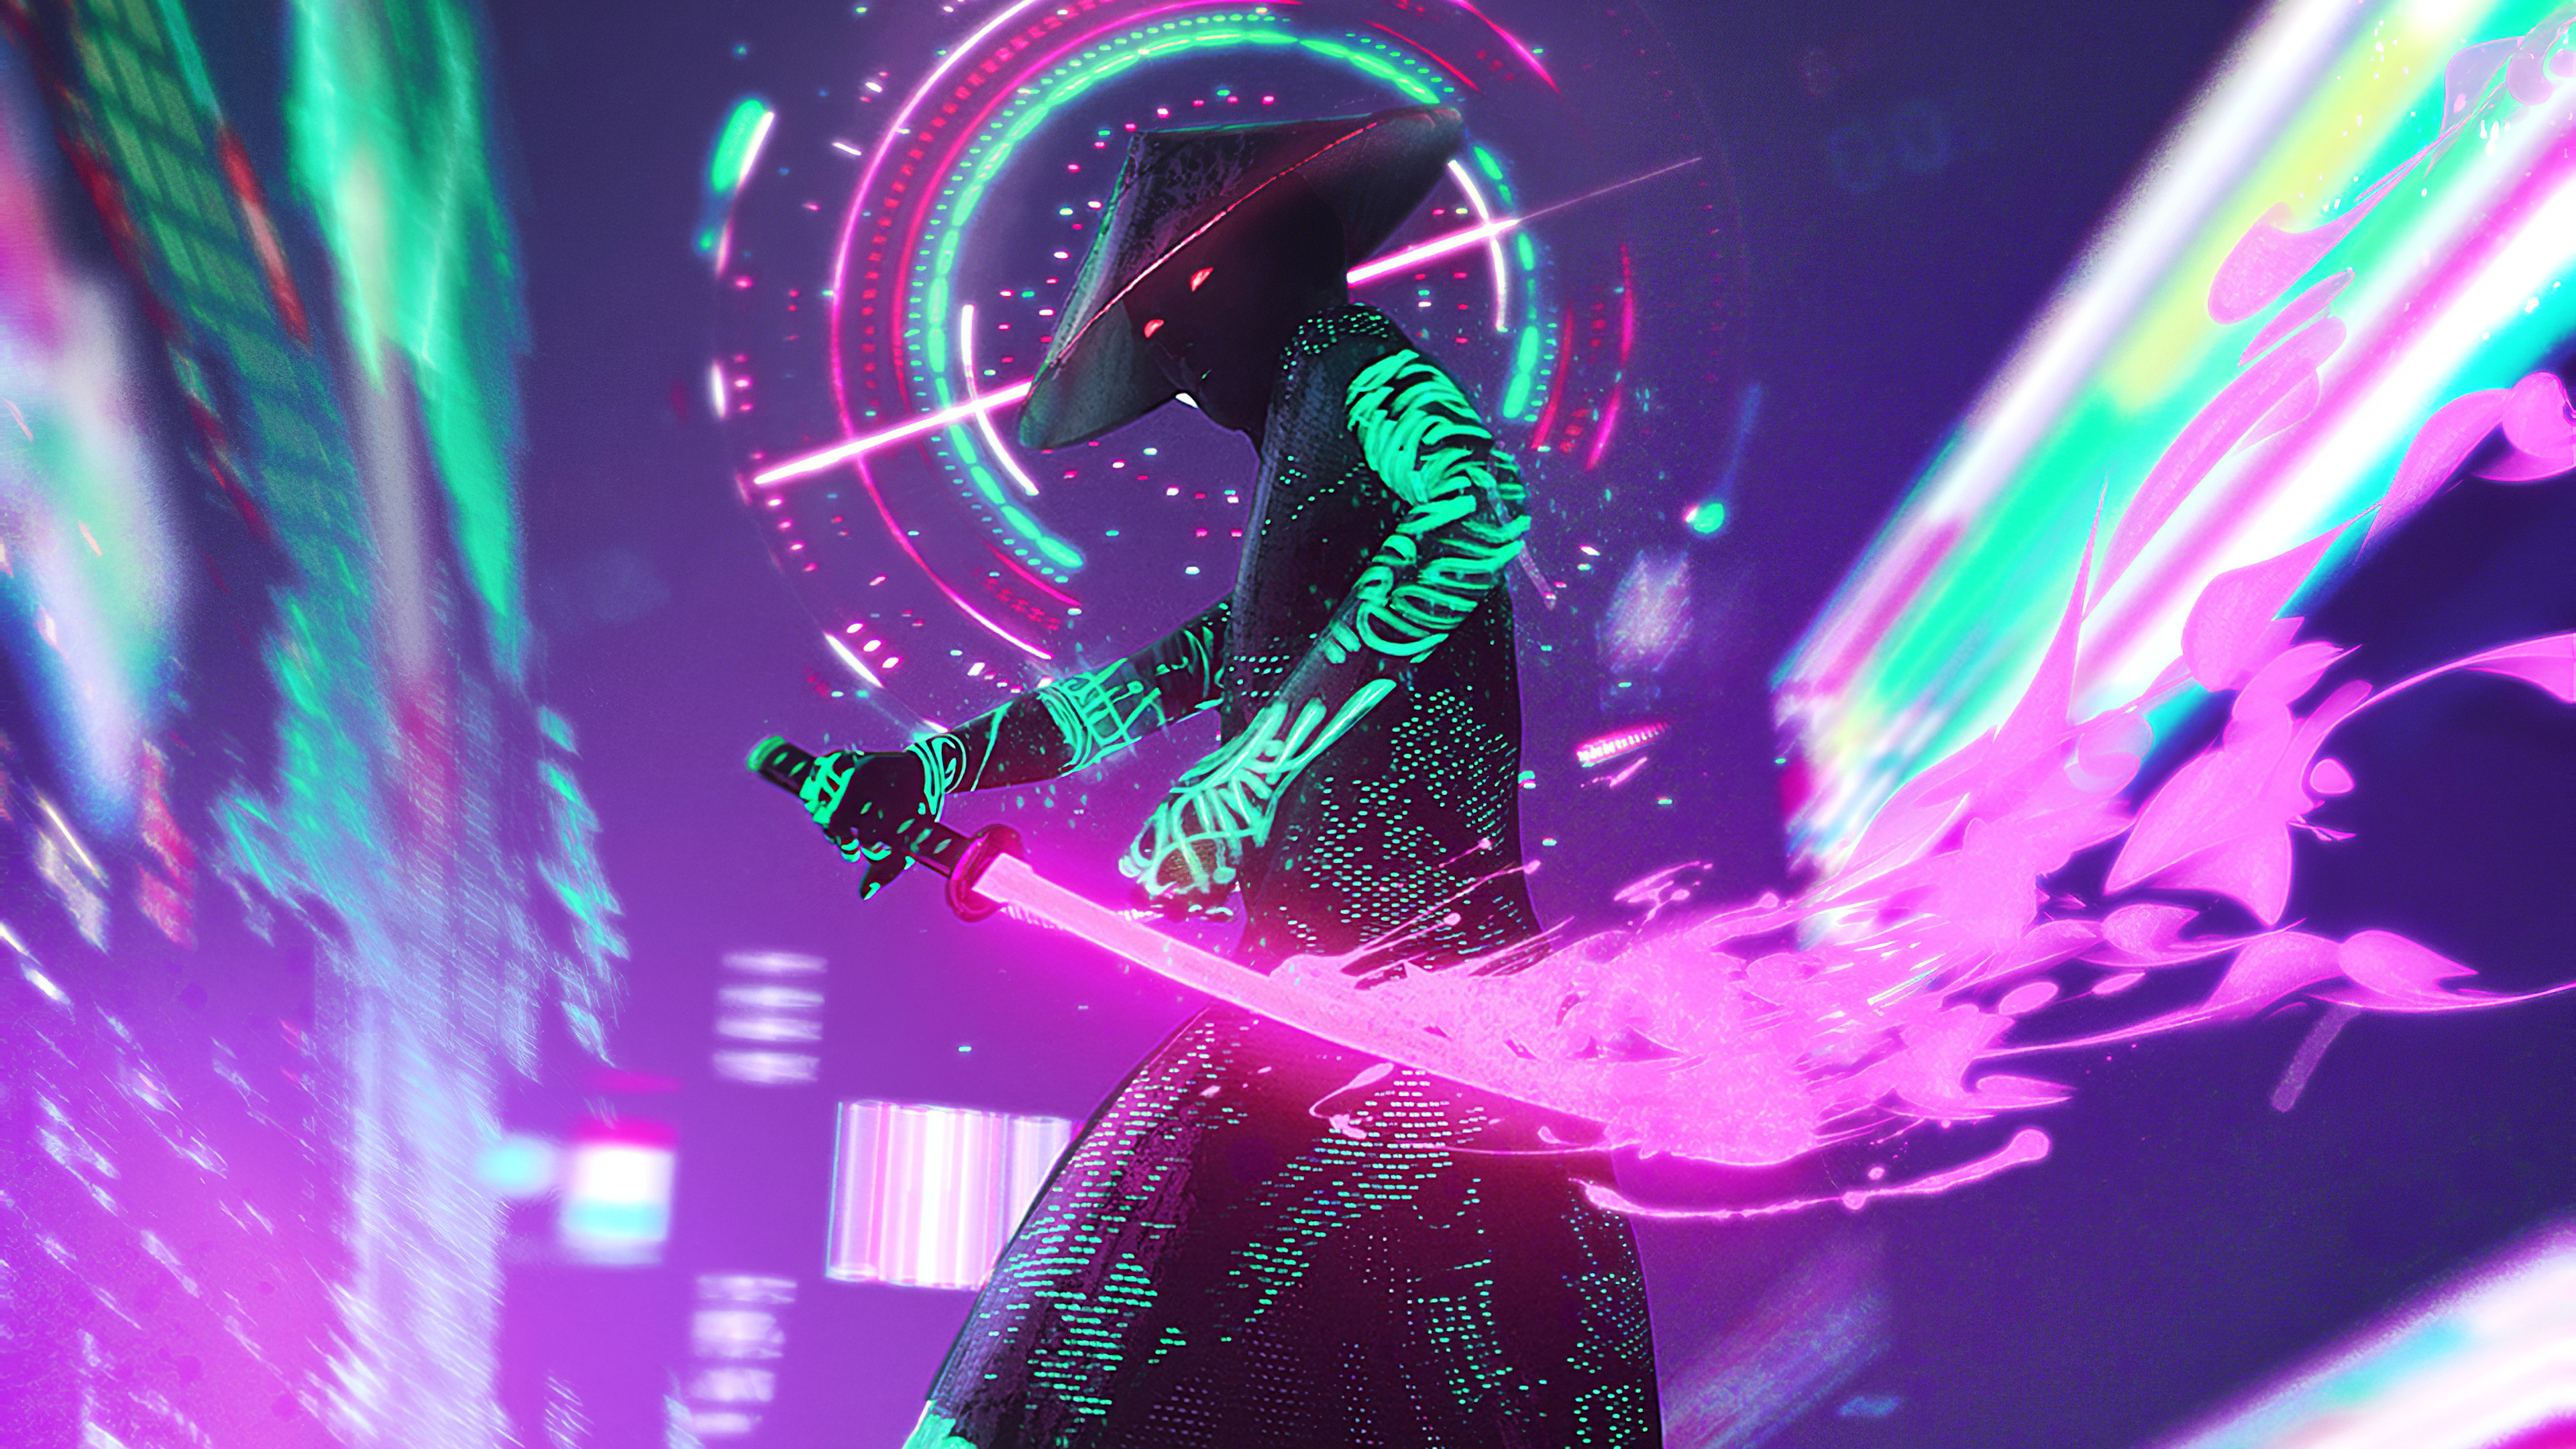 Neon Samurai Cyberpunk Wallpaper Hd Artist 4k Wallpapers Images Photos And Background